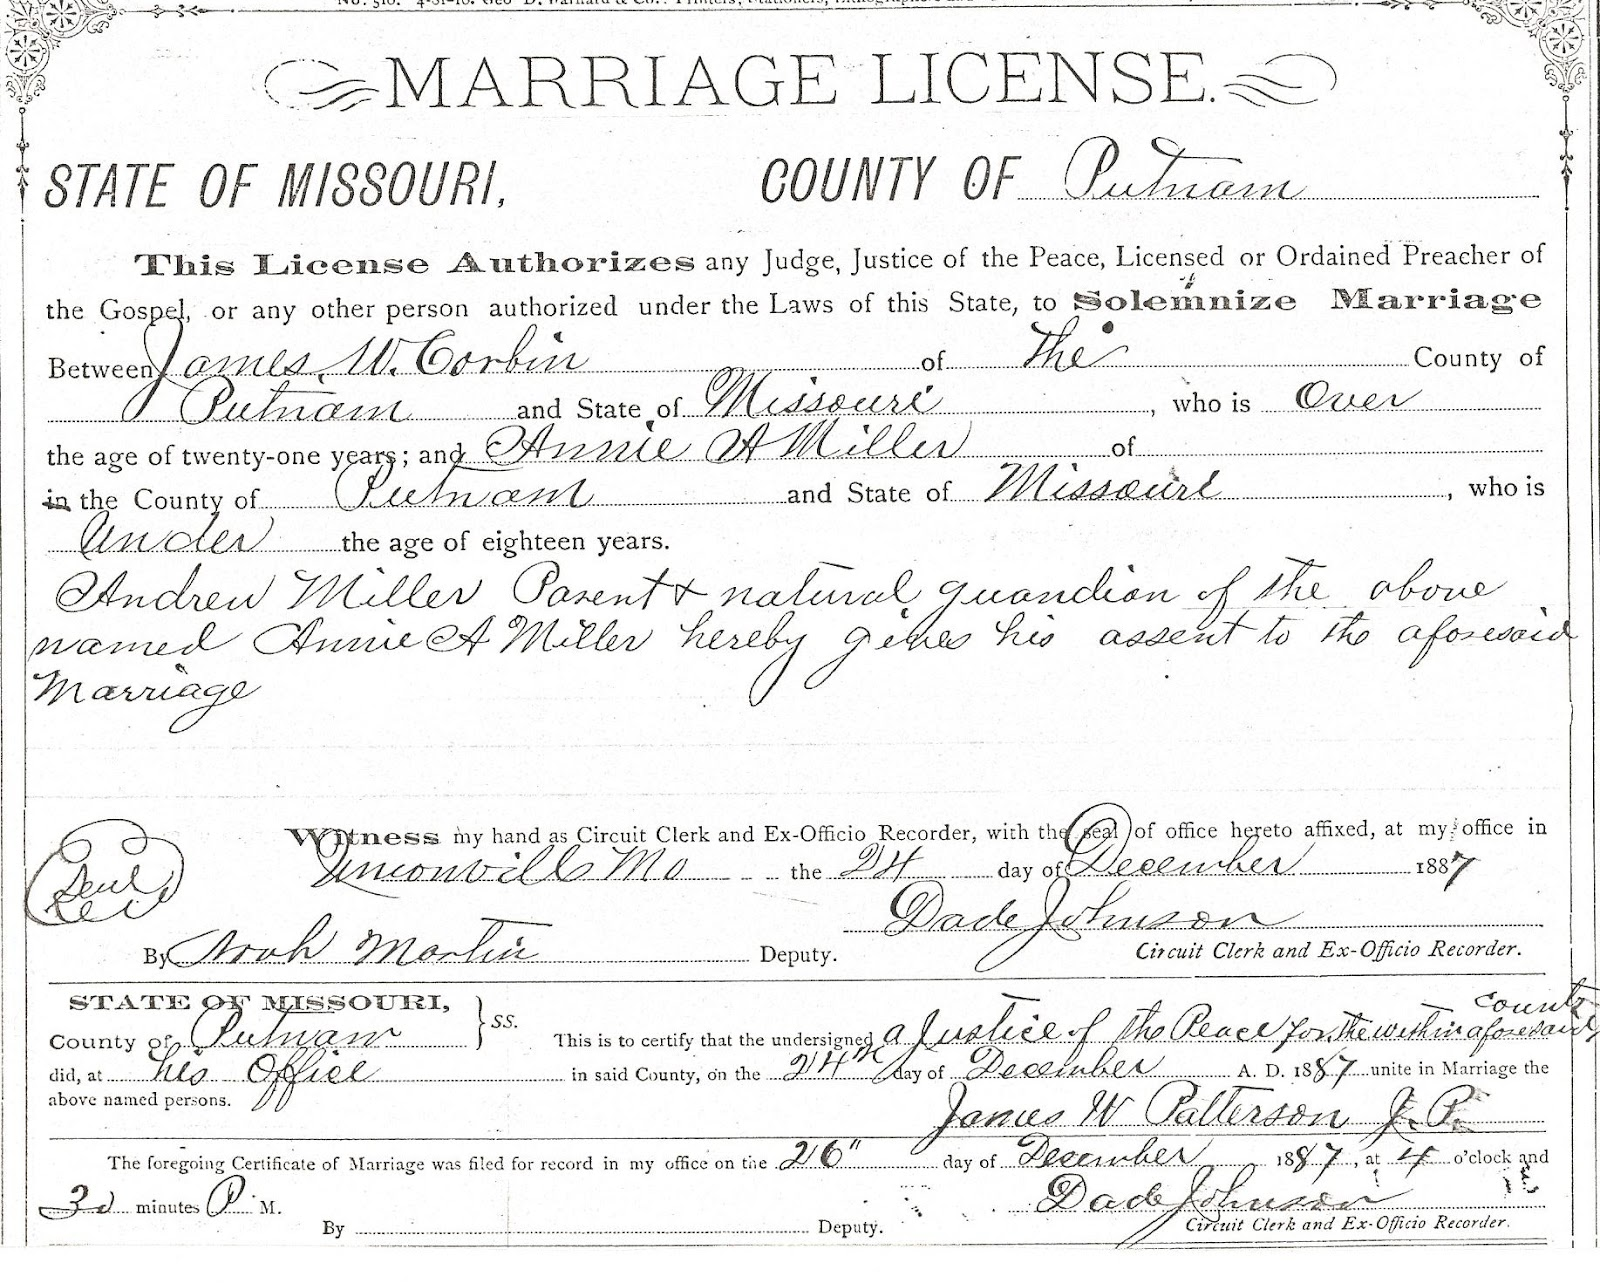 This Is A Copy Of The Marriage License For James William And Annie (miller)